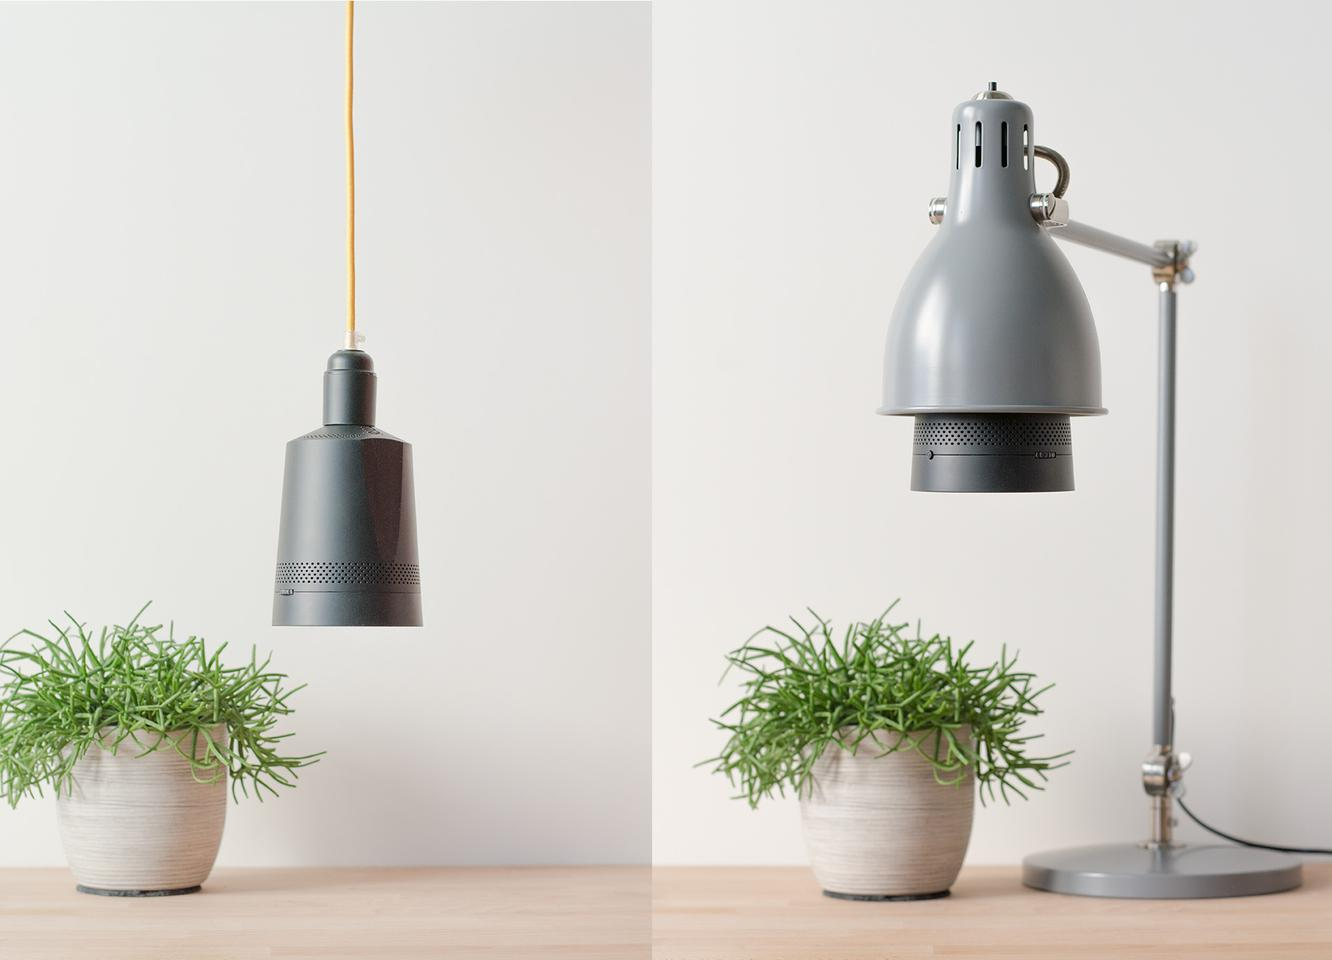 Beam is a smart projector that can be screwed into a light socket